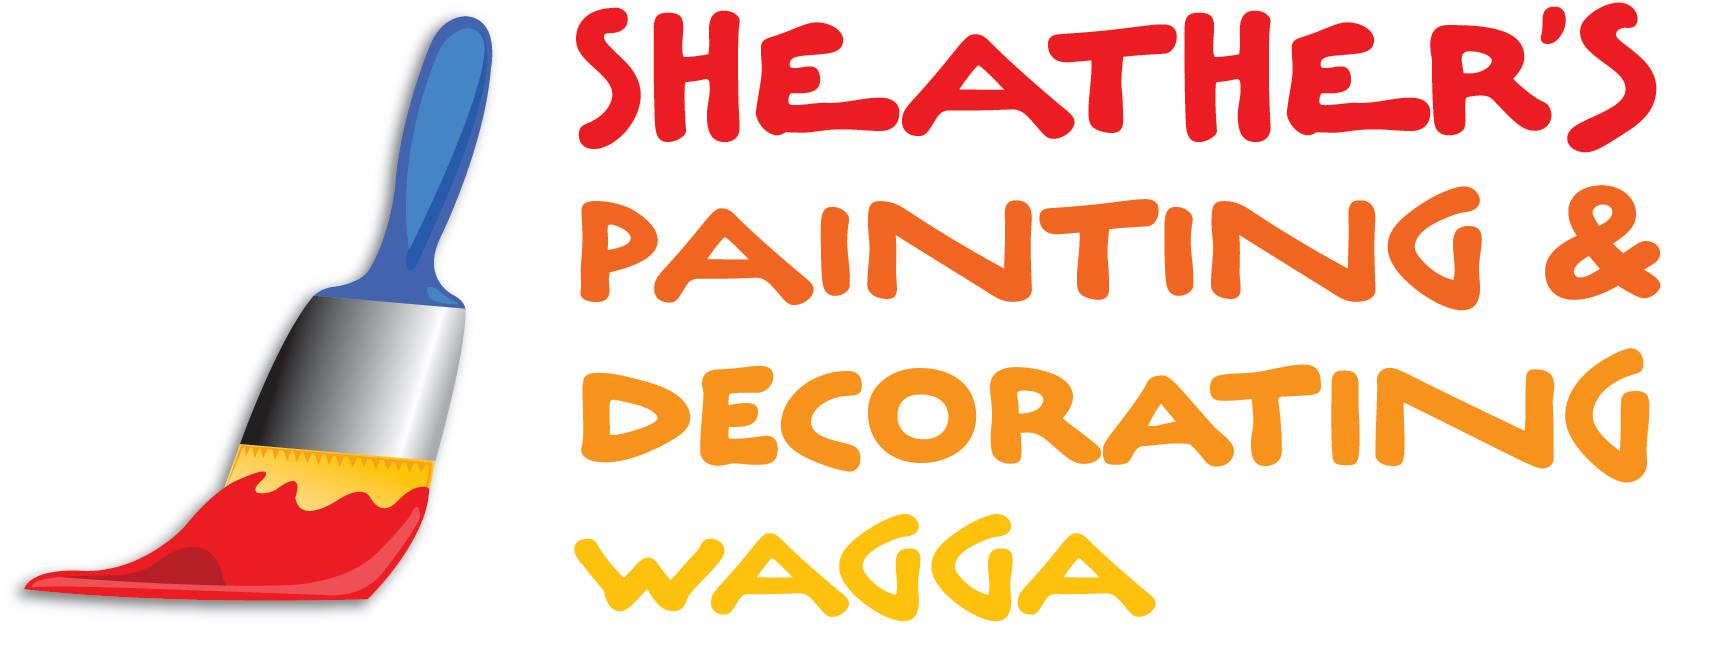 Sheather's Painting & Decorating